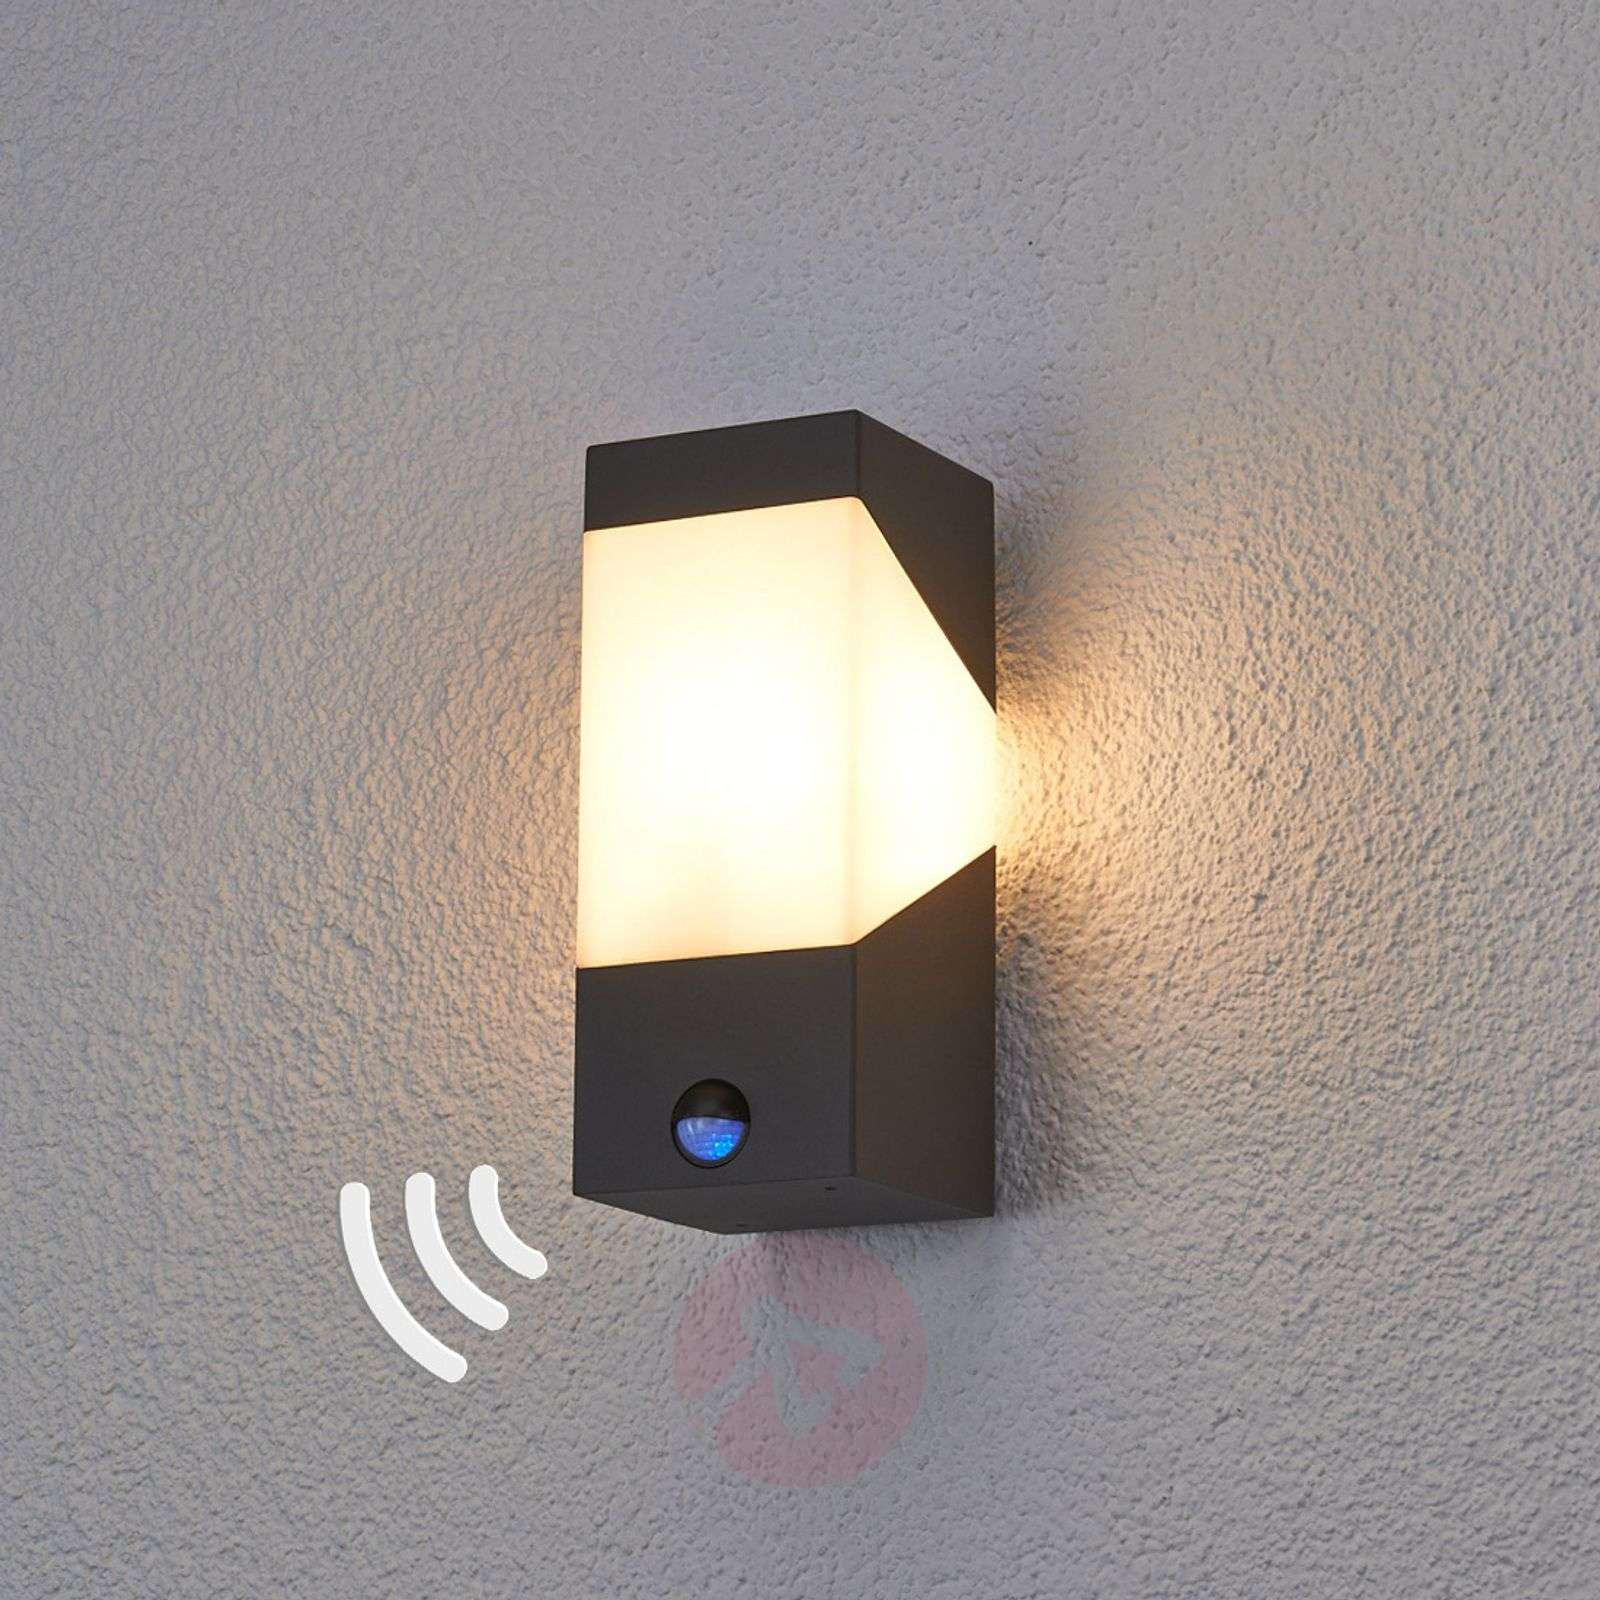 Kiran Exterior LED Wall Lamp with Motion Detector Lights.co.uk